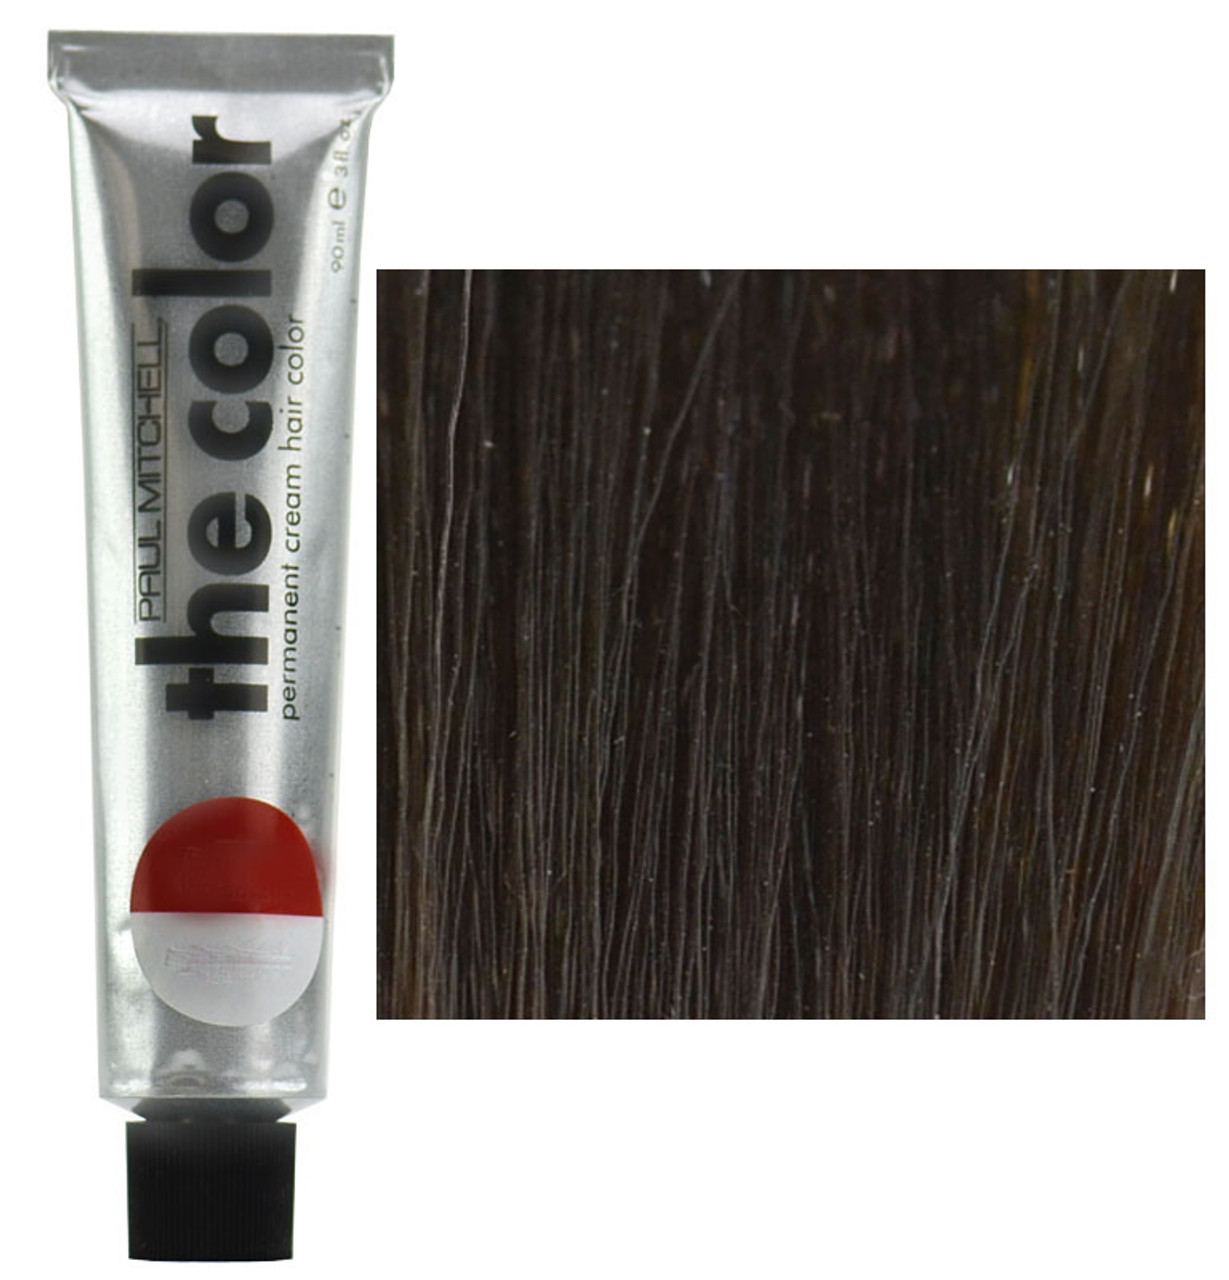 Paul Mitchell Hair Color The Color Sleekshop Formerly